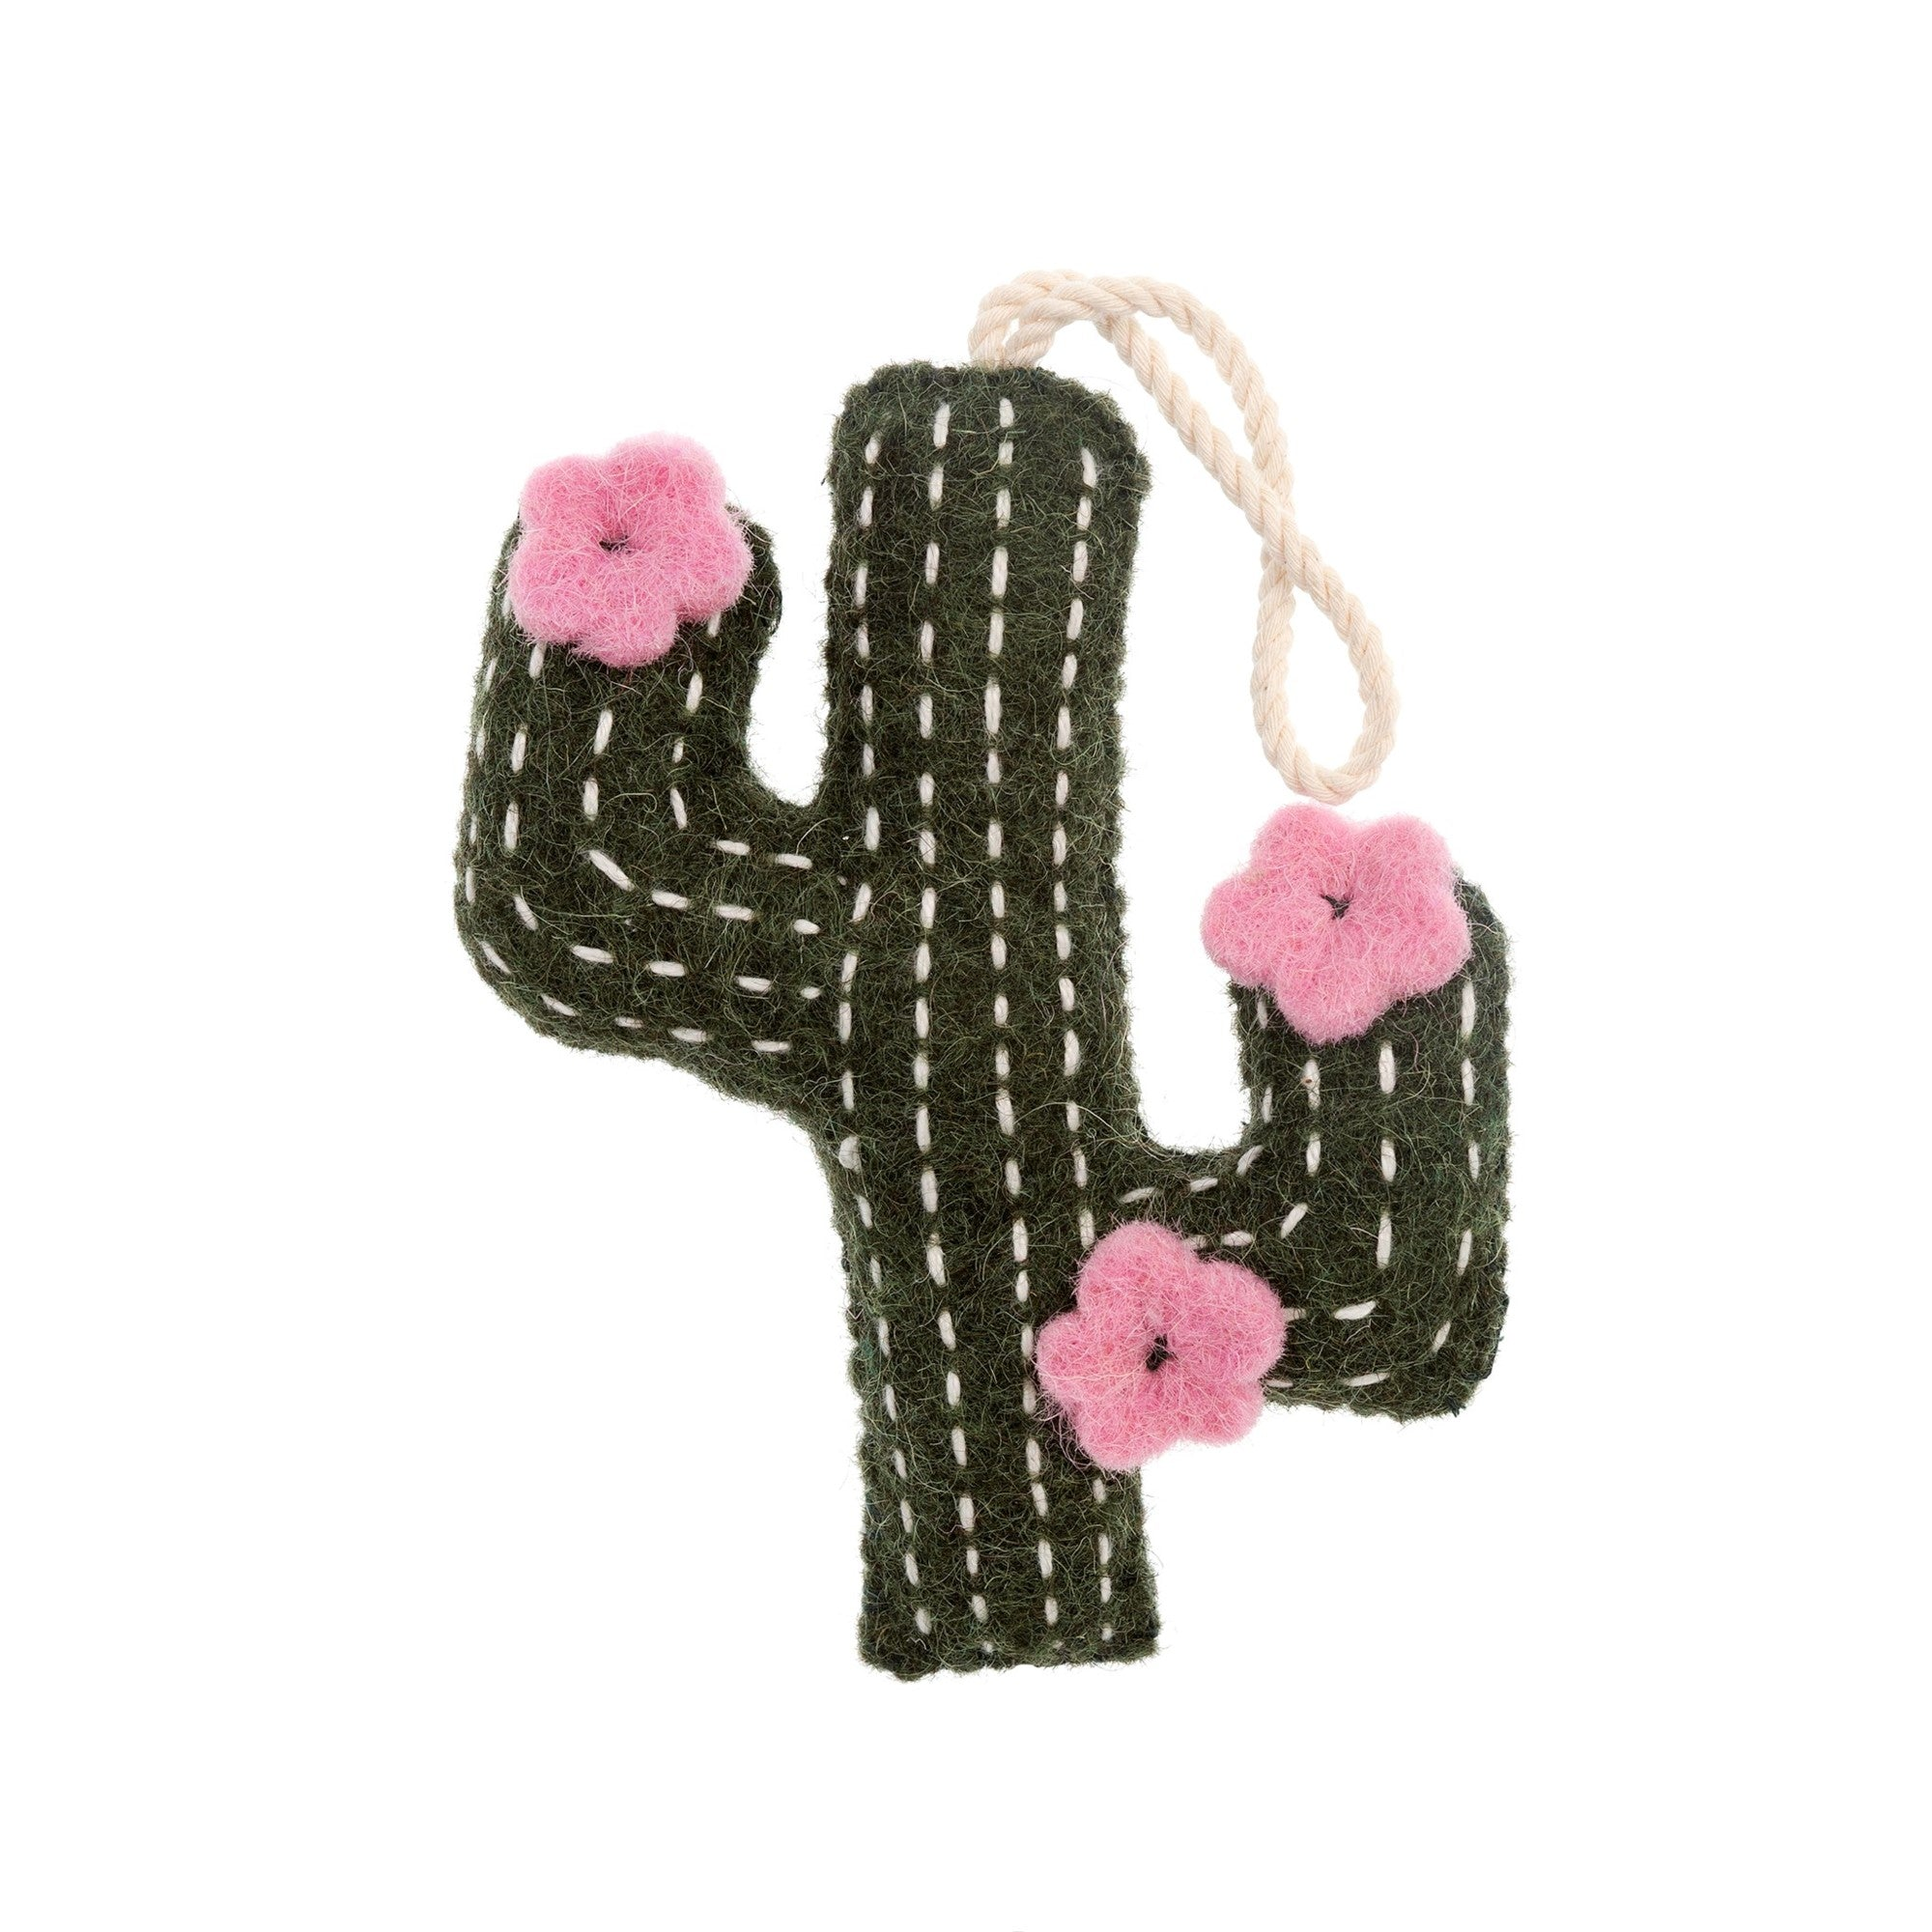 Felted Cactus Ornament with Pink Flowers